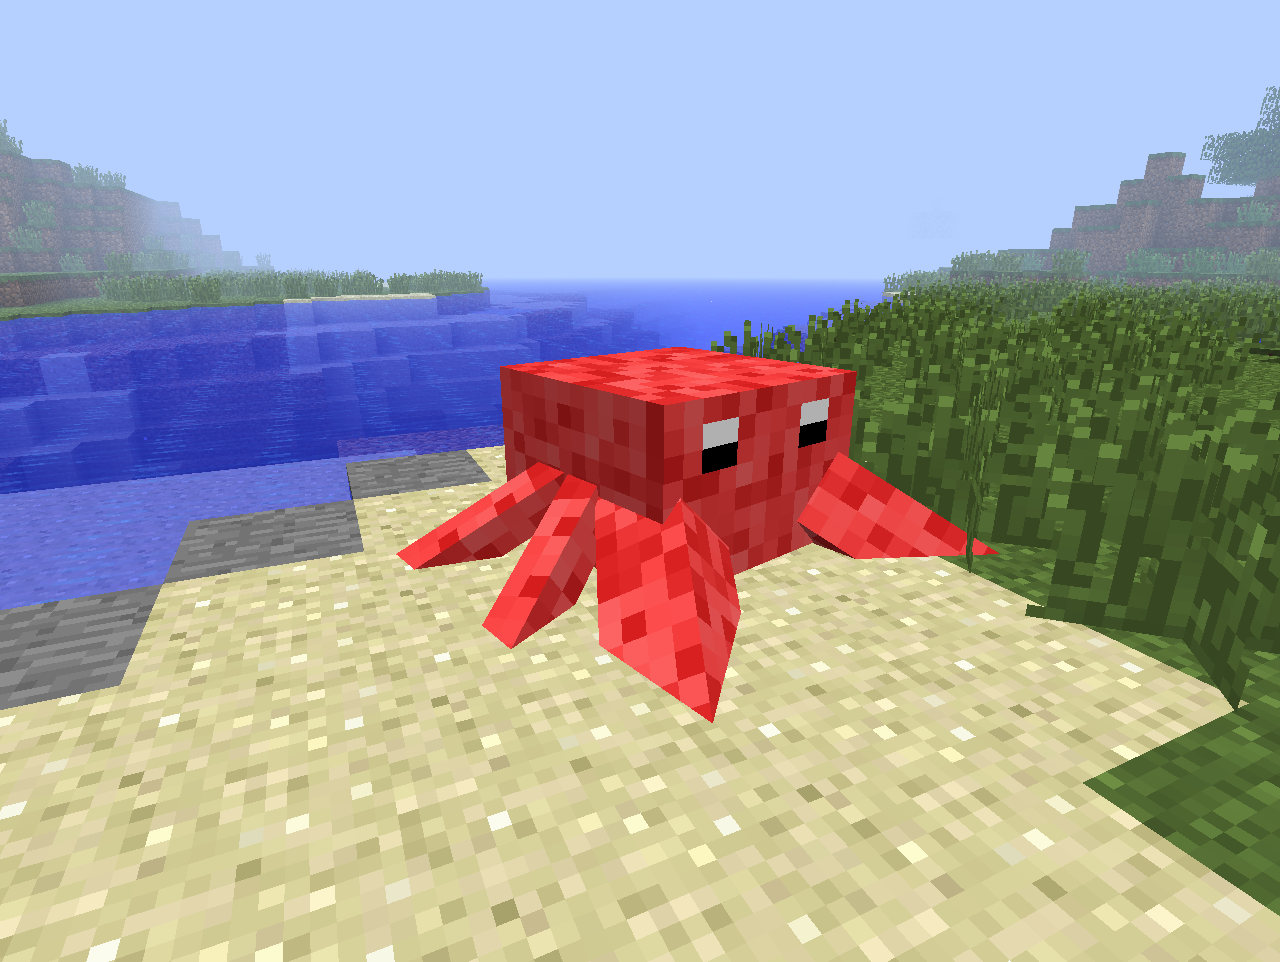 King Crab Images a King Crab on a Beach